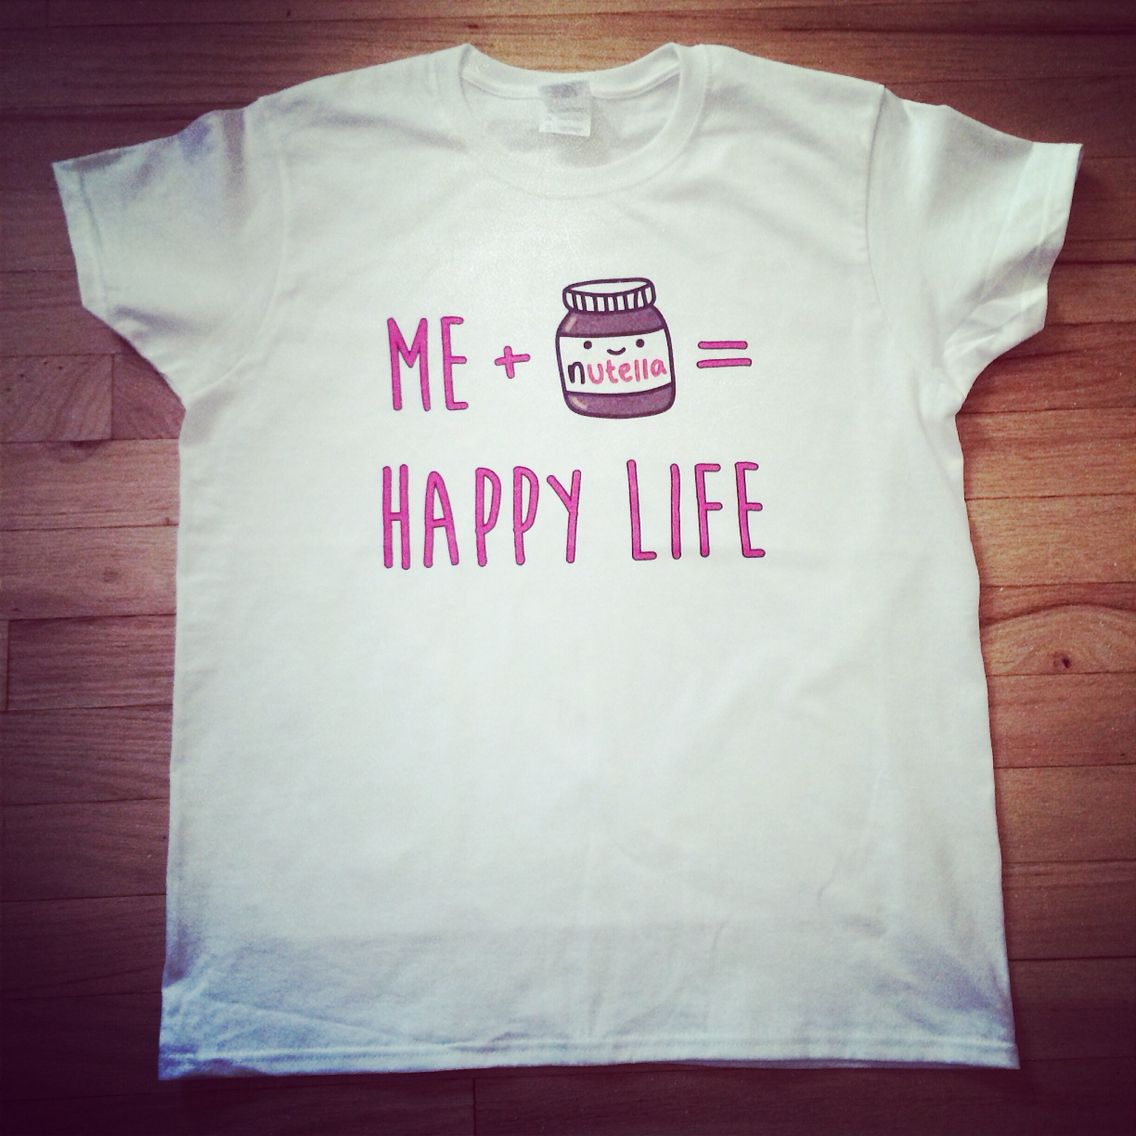 Me + Nutella   Happy Life Graphic Tee! - www.hipstertops.com  tgif ... 397cfedbed